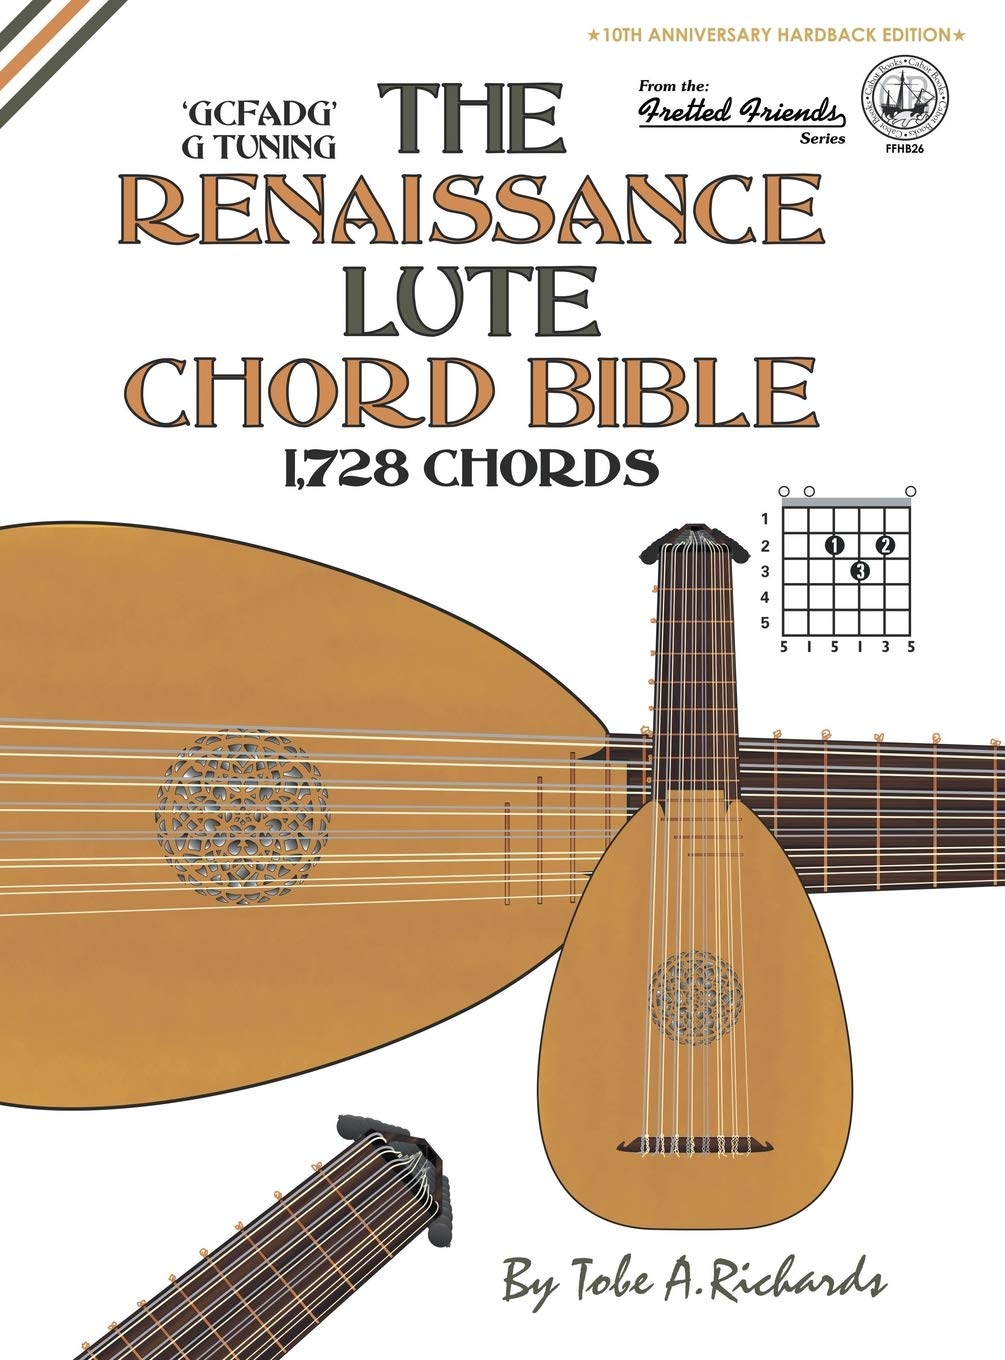 The Renaissance Lute Chord Bible: Standard G Tuning 1,728 Chords ...